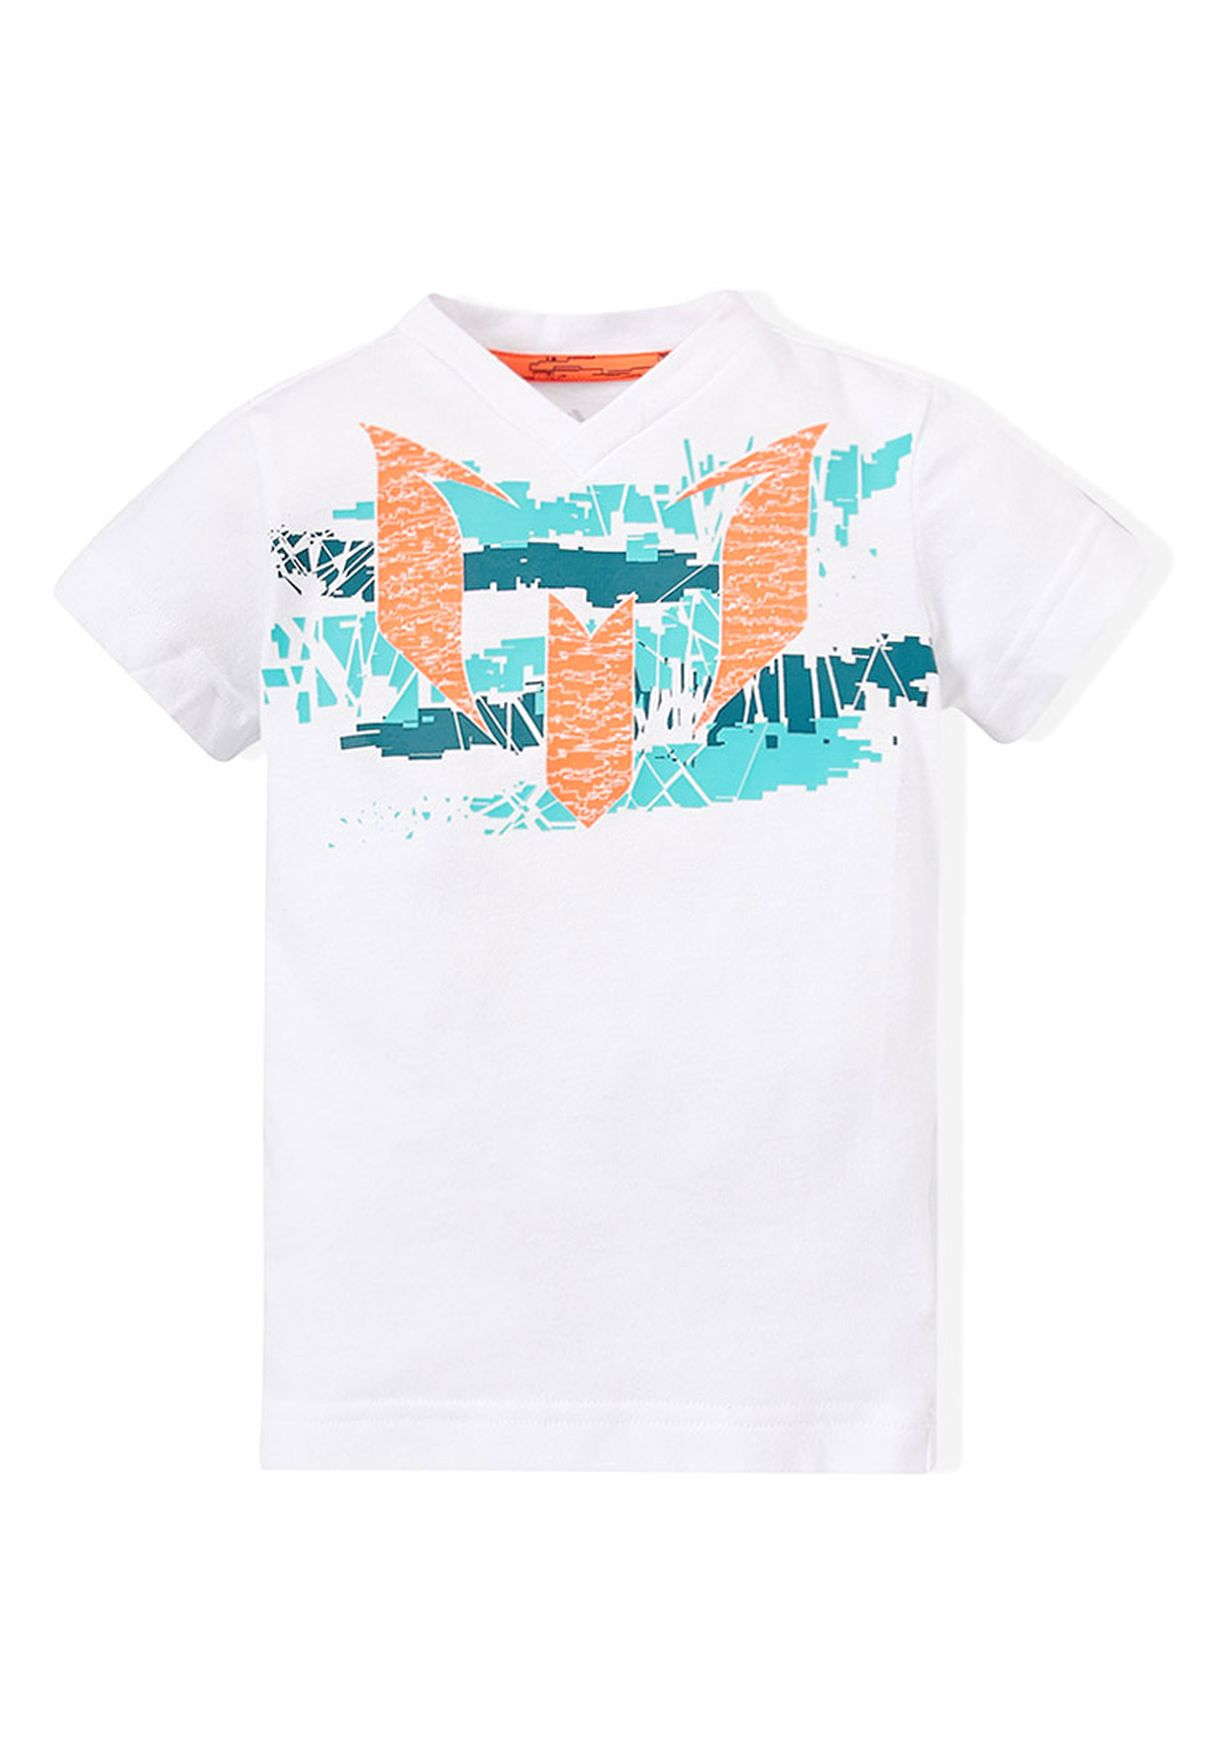 Torpe experimental Accidentalmente  Buy adidas white Messi T-Shirt for Kids in MENA, Worldwide | S86339